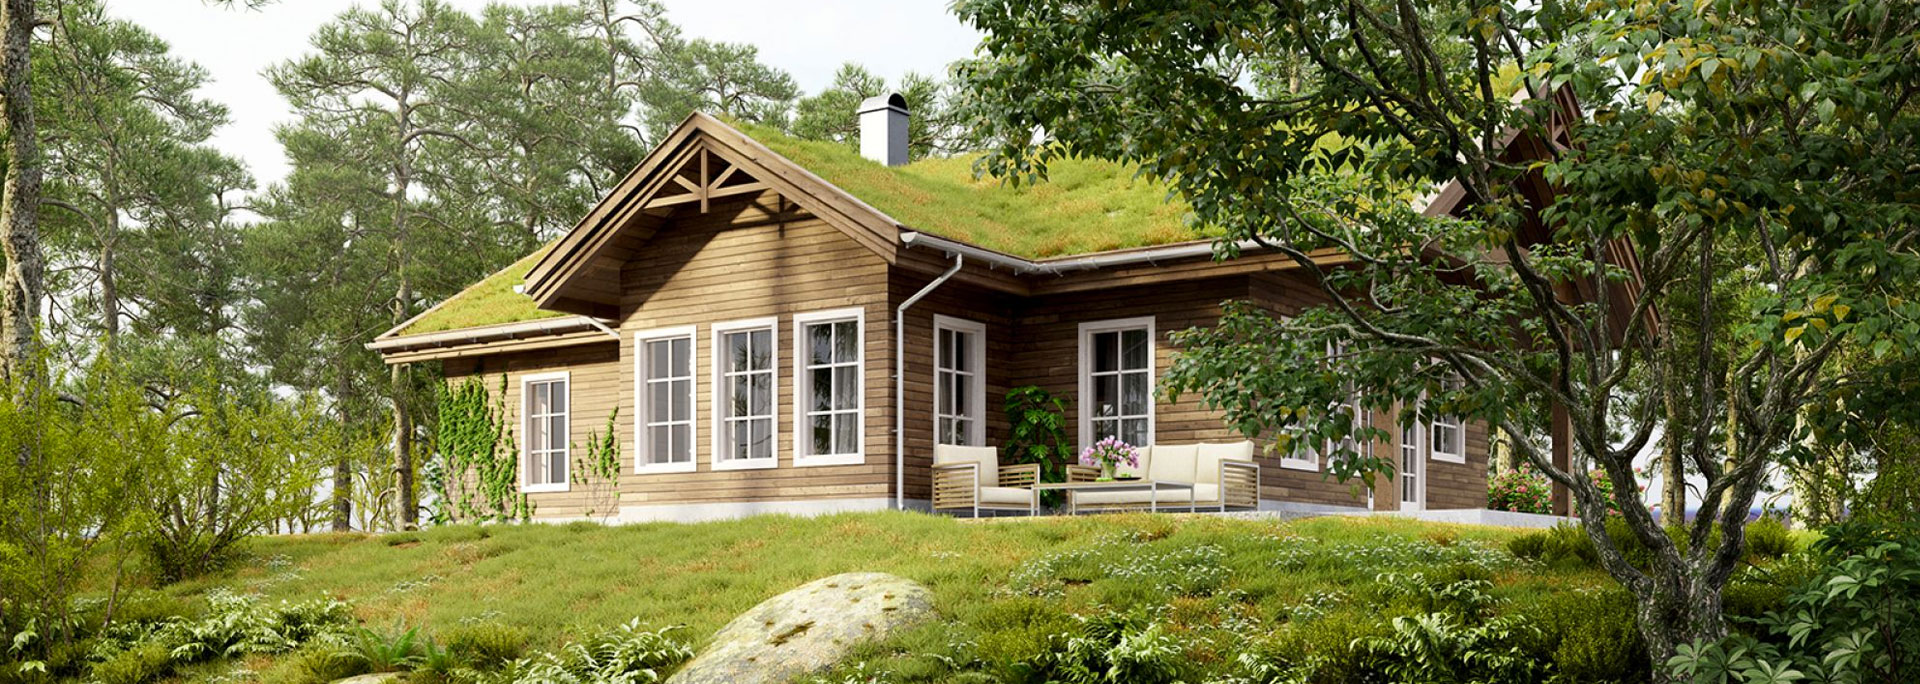 3D photorealistic architectural visualization of a sustainable architecture craftsman style residence with wood siding and a green live roof